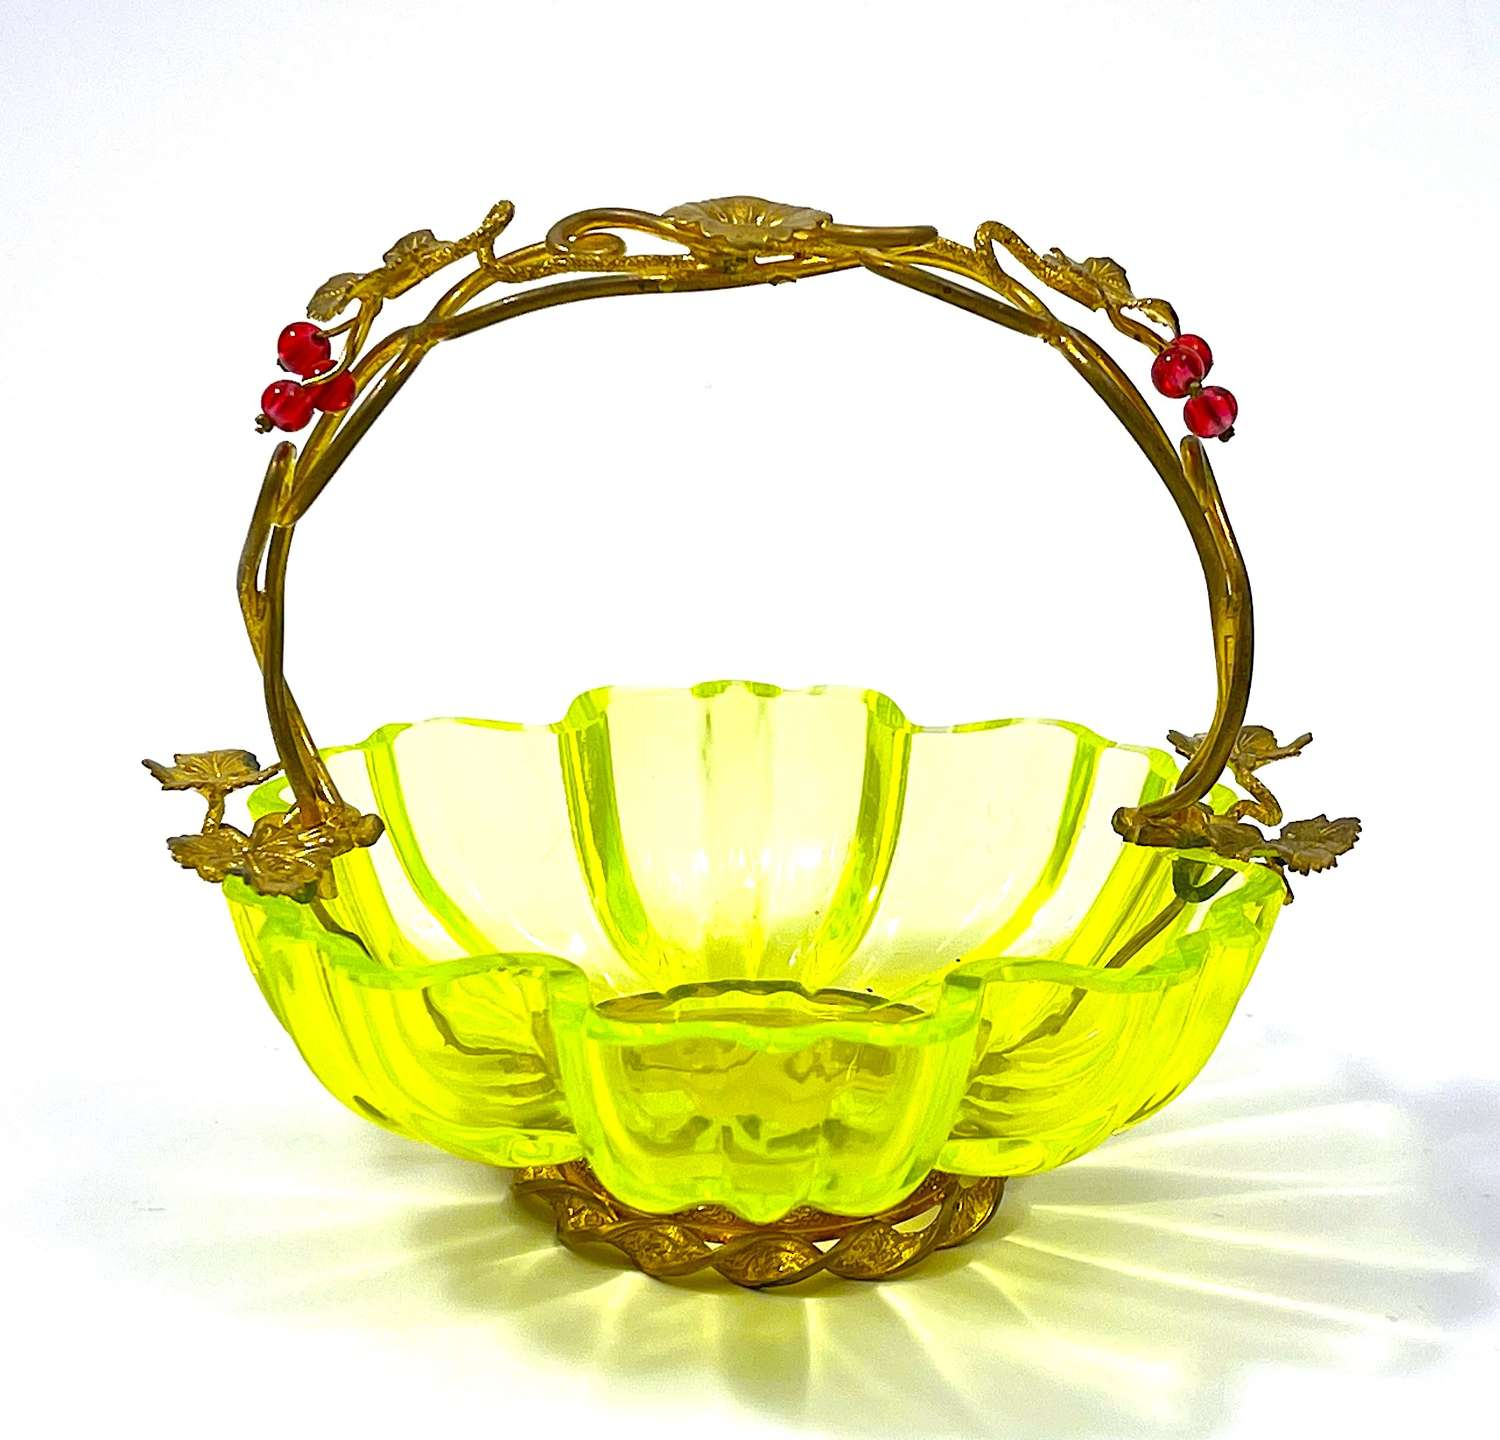 Antique French Ouraline / UraniumGlass Basket with Red Baubles